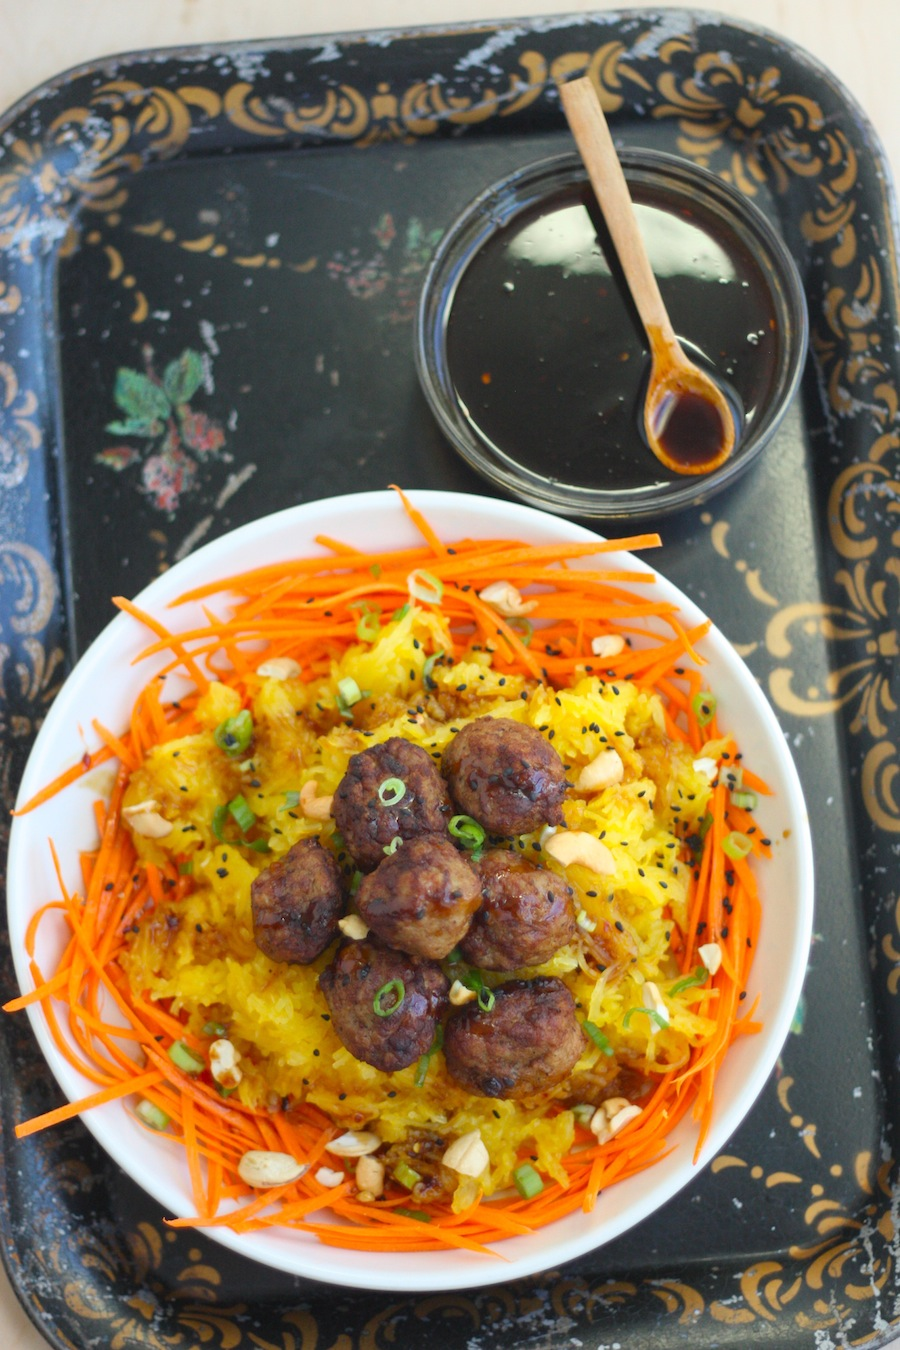 Teriyaki Spaghetti Squash with Carrot Noodles and Meatballs